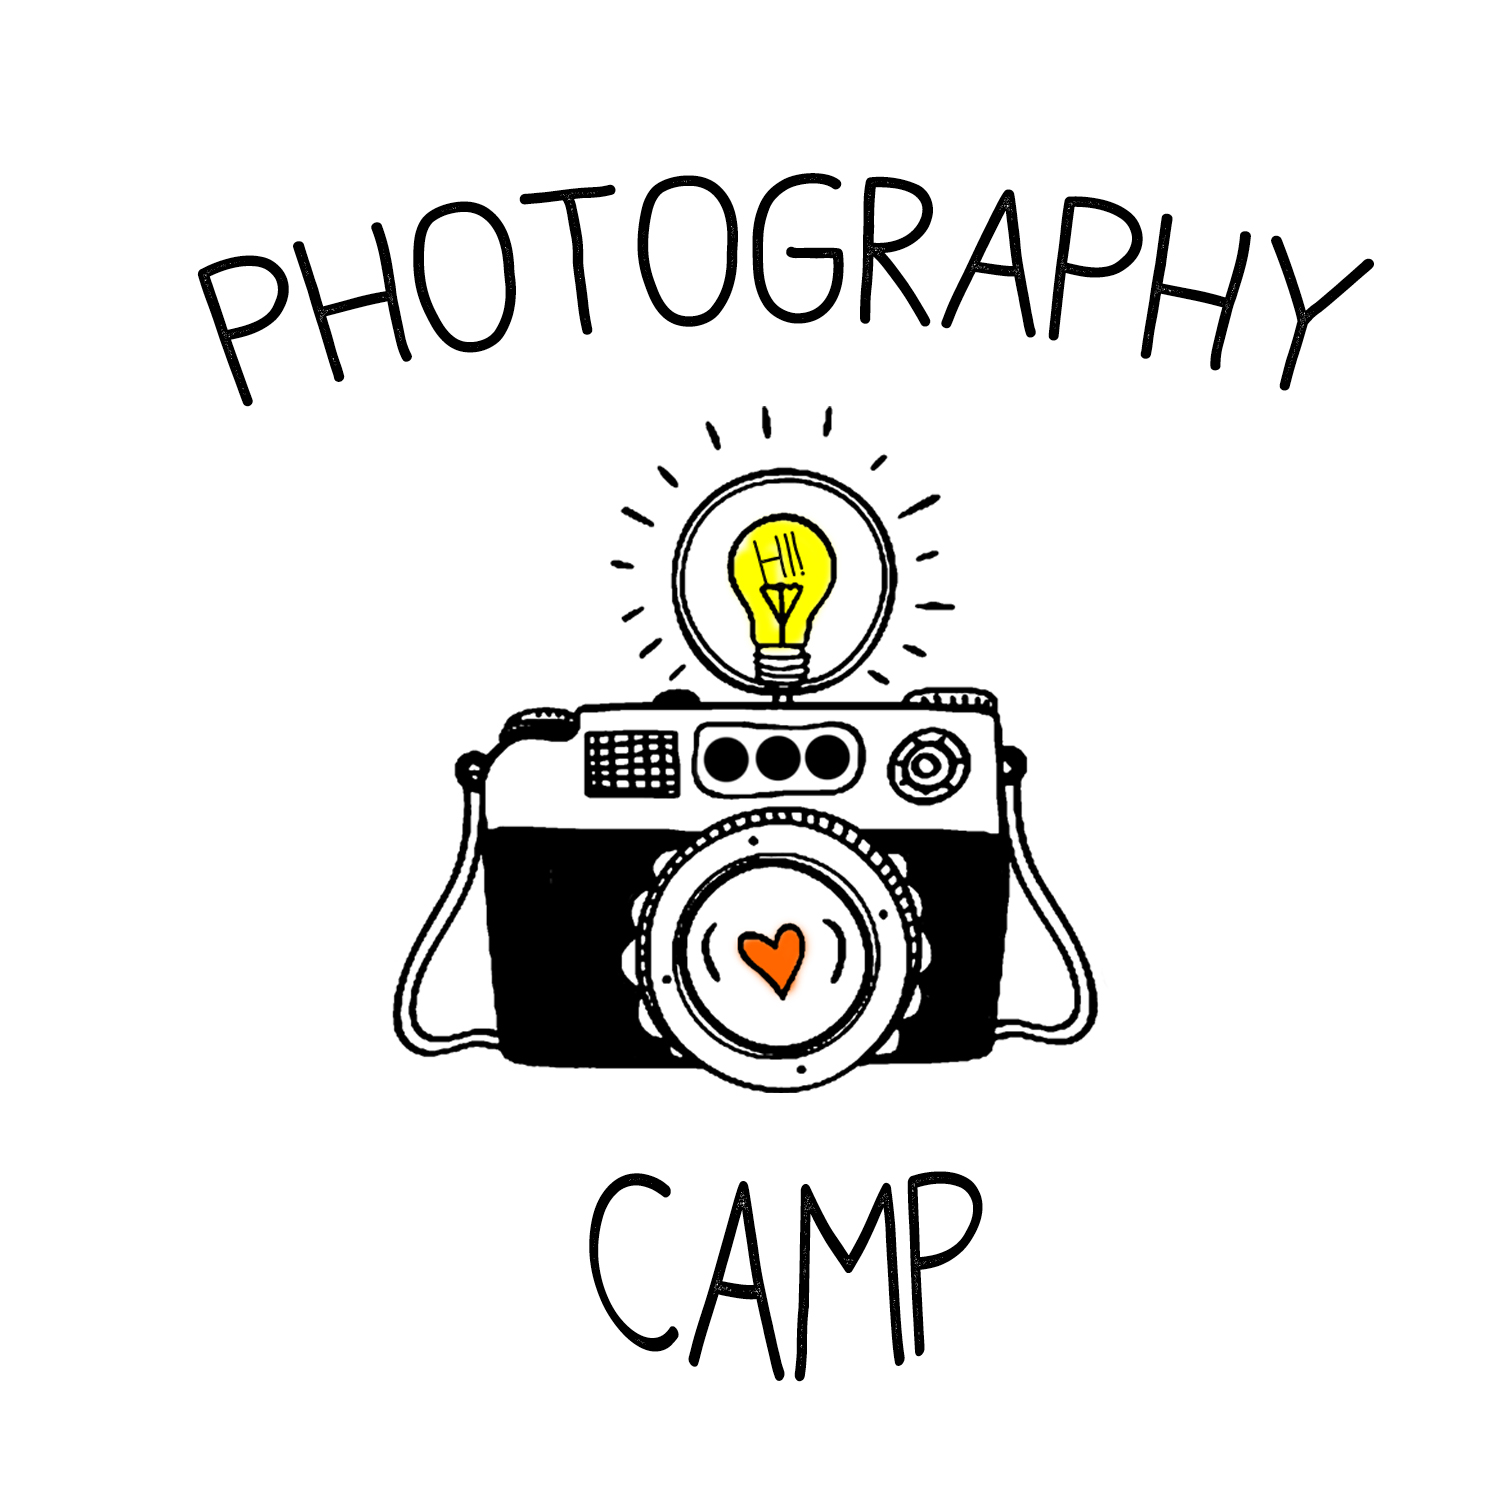 June 10-14 - To Sign up for the Summer Photography Camp Click below!